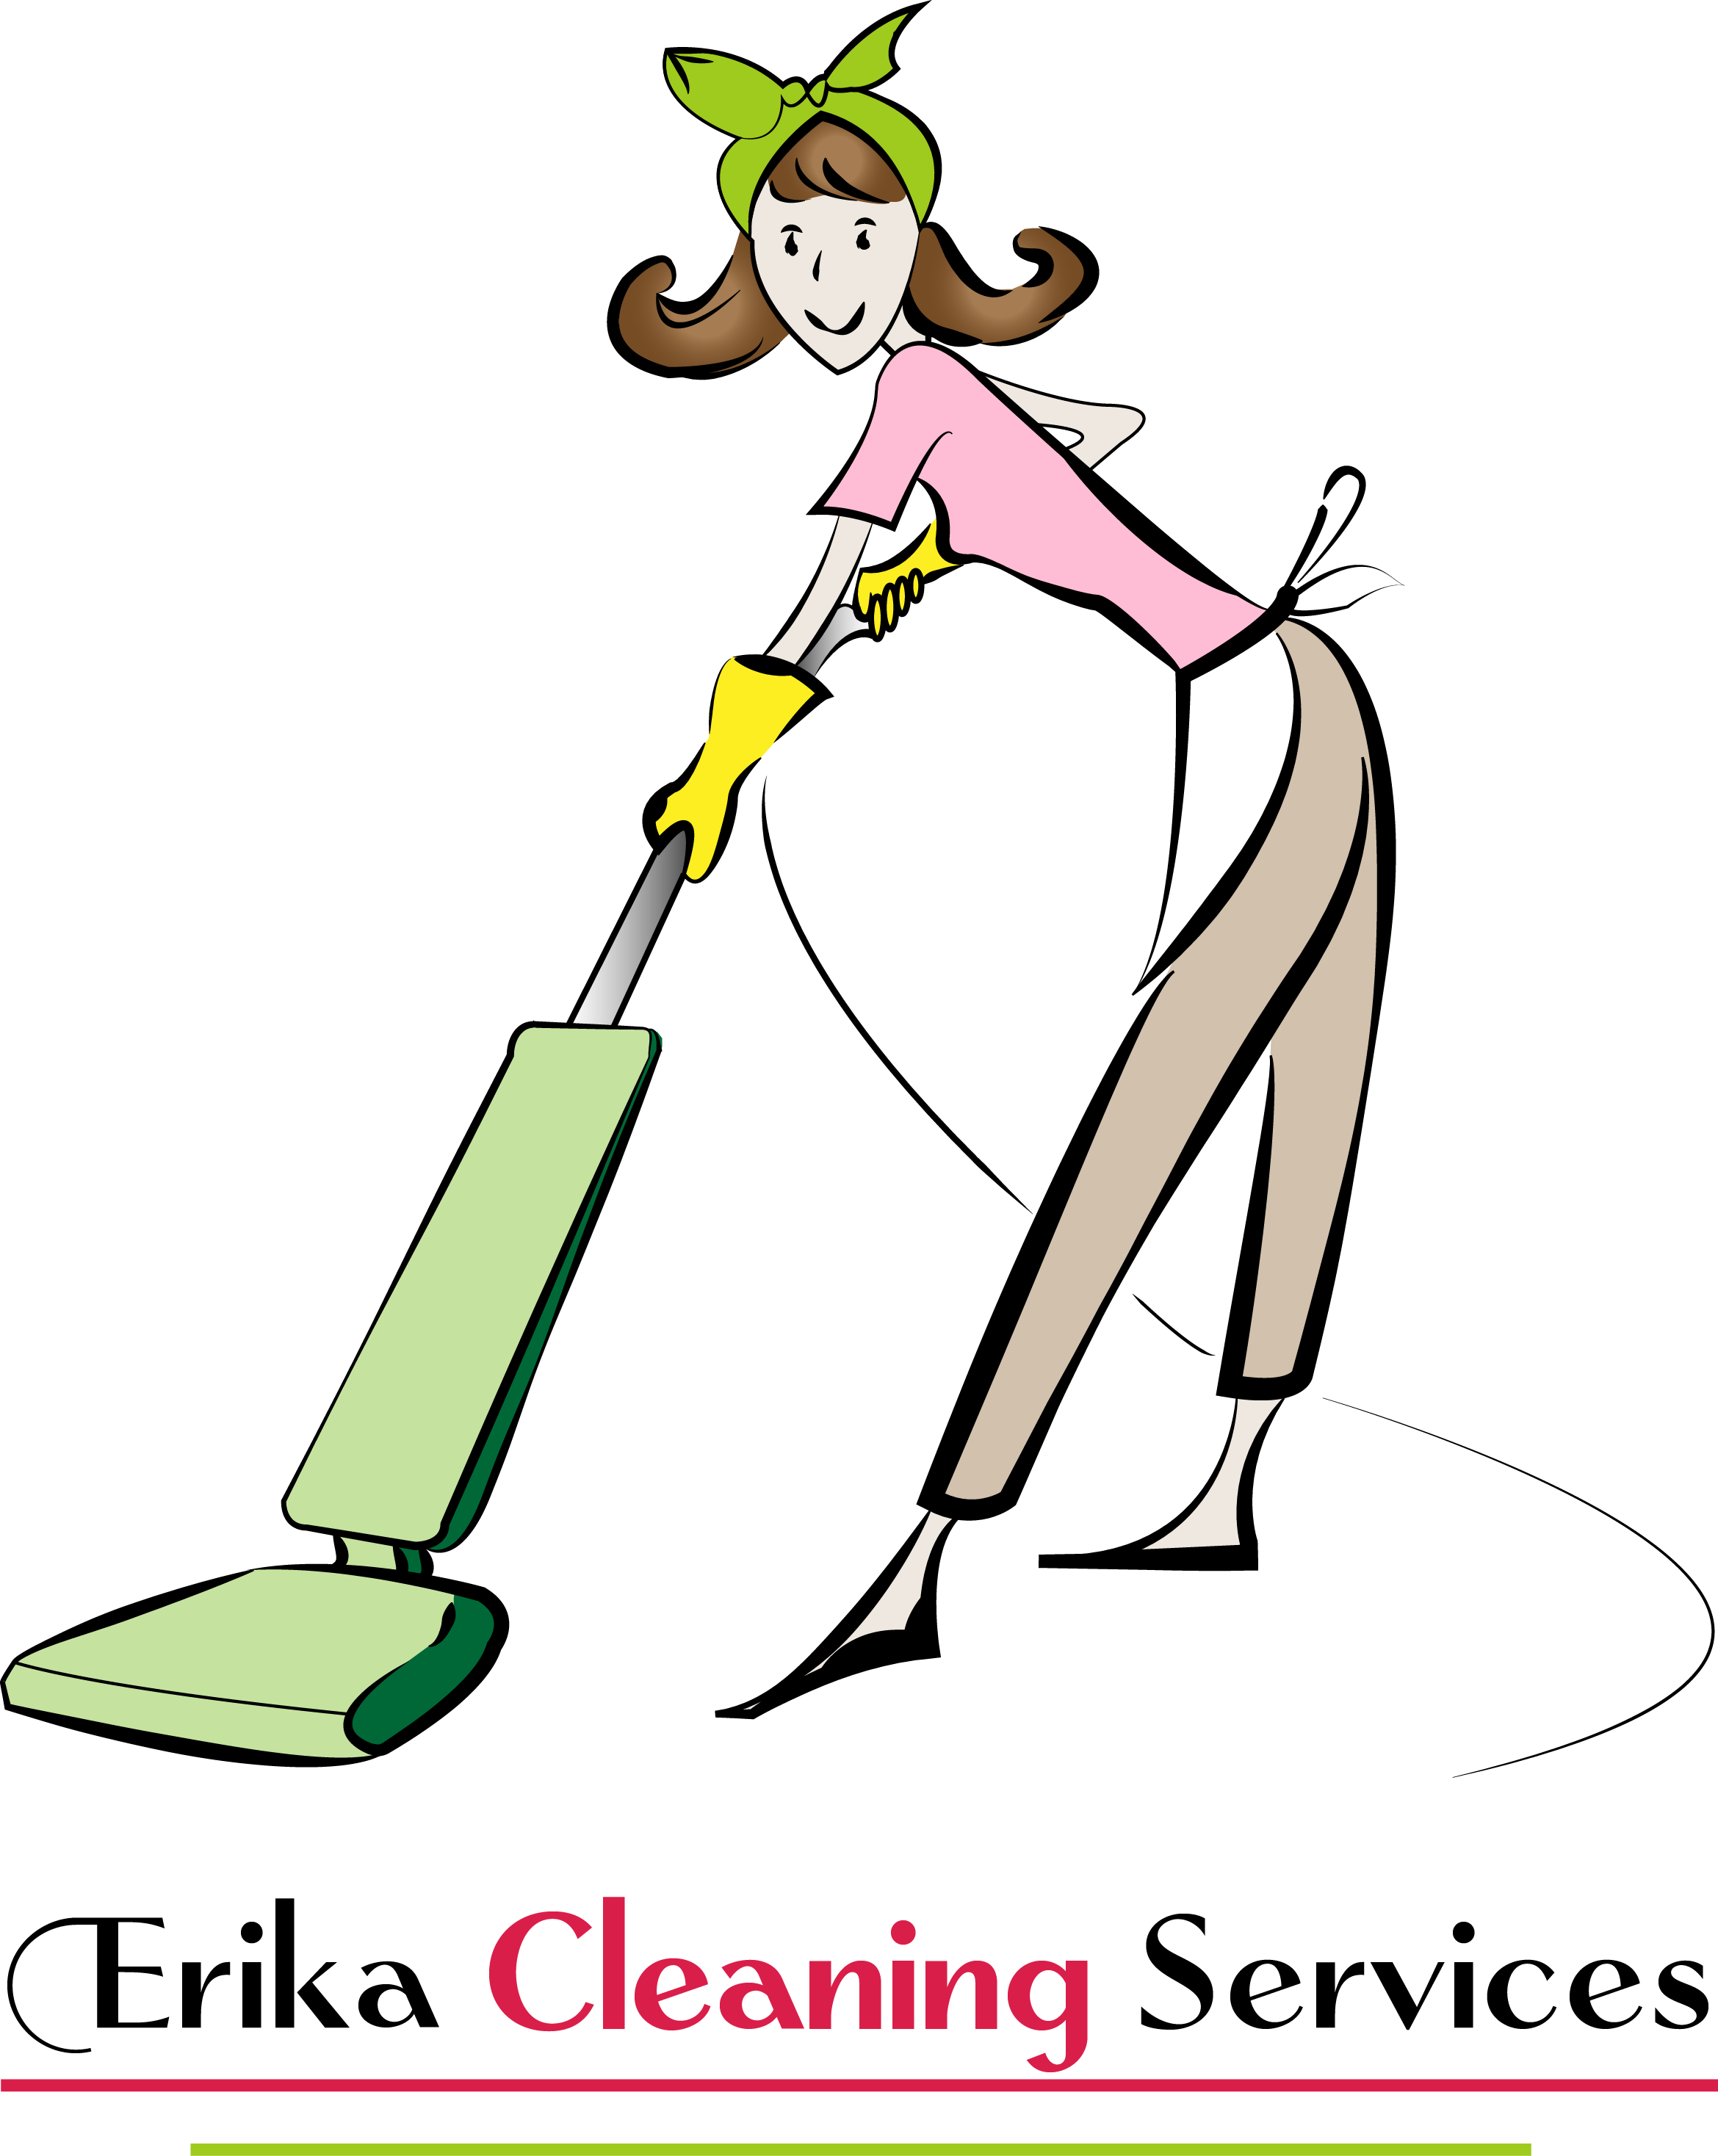 Maid clipart cleaning bathroom. Erika services new york